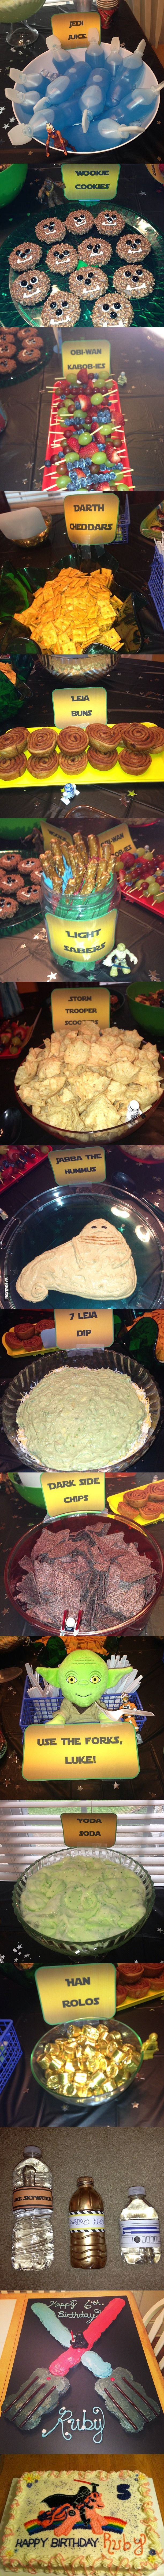 A Star Wars themed birthday party